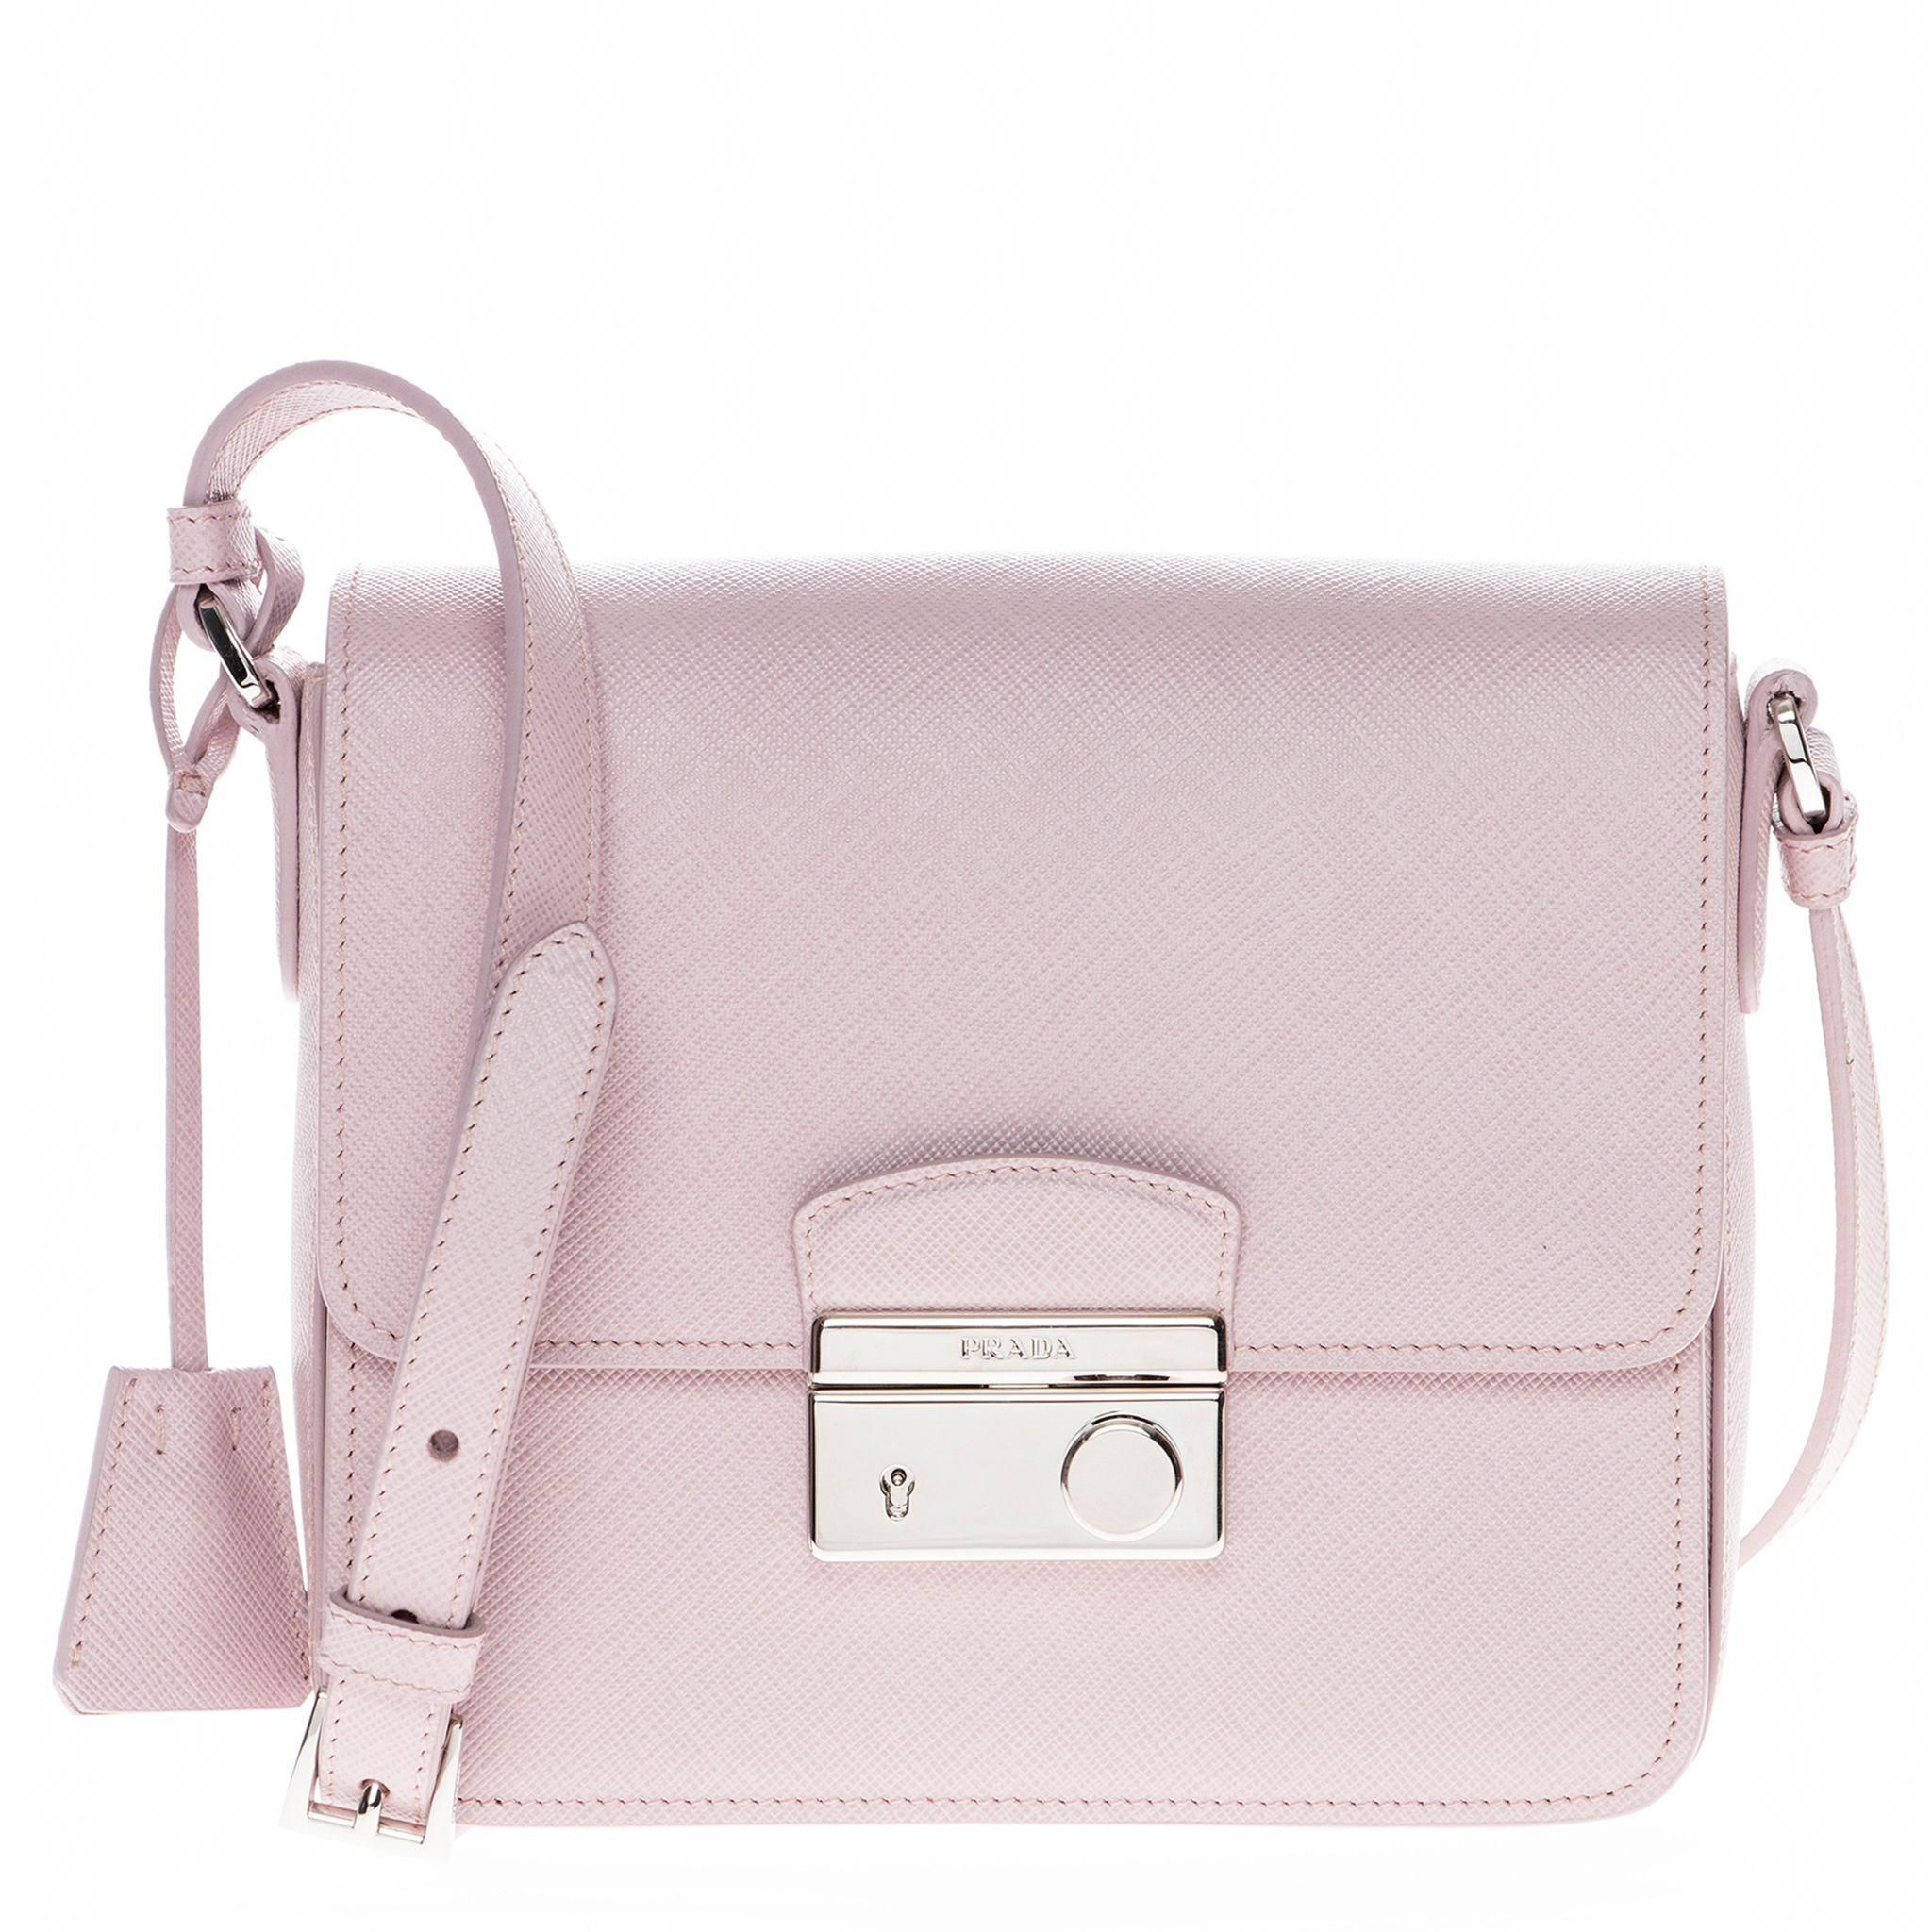 ... inexpensive this compact crossbody handbag by prada showcases a light  pink saffiano leather construction. paired ... 6604262a39317